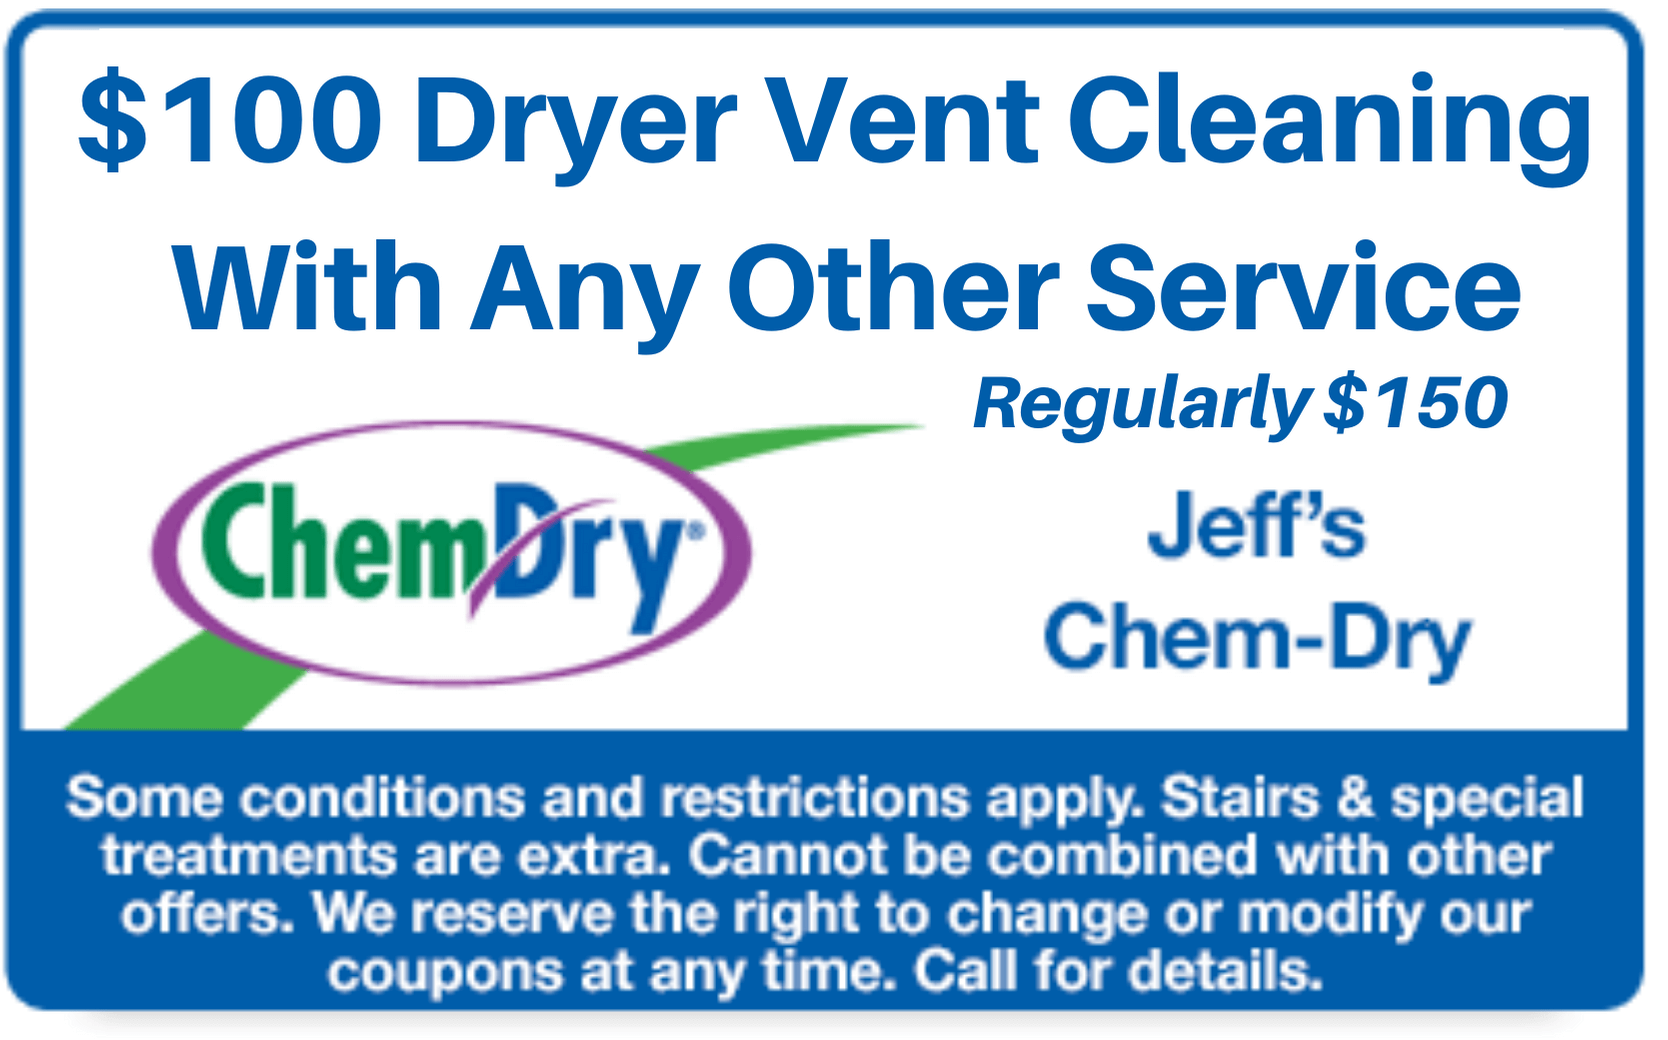 $100 Dryer Vent Cleaning with any other service coupon